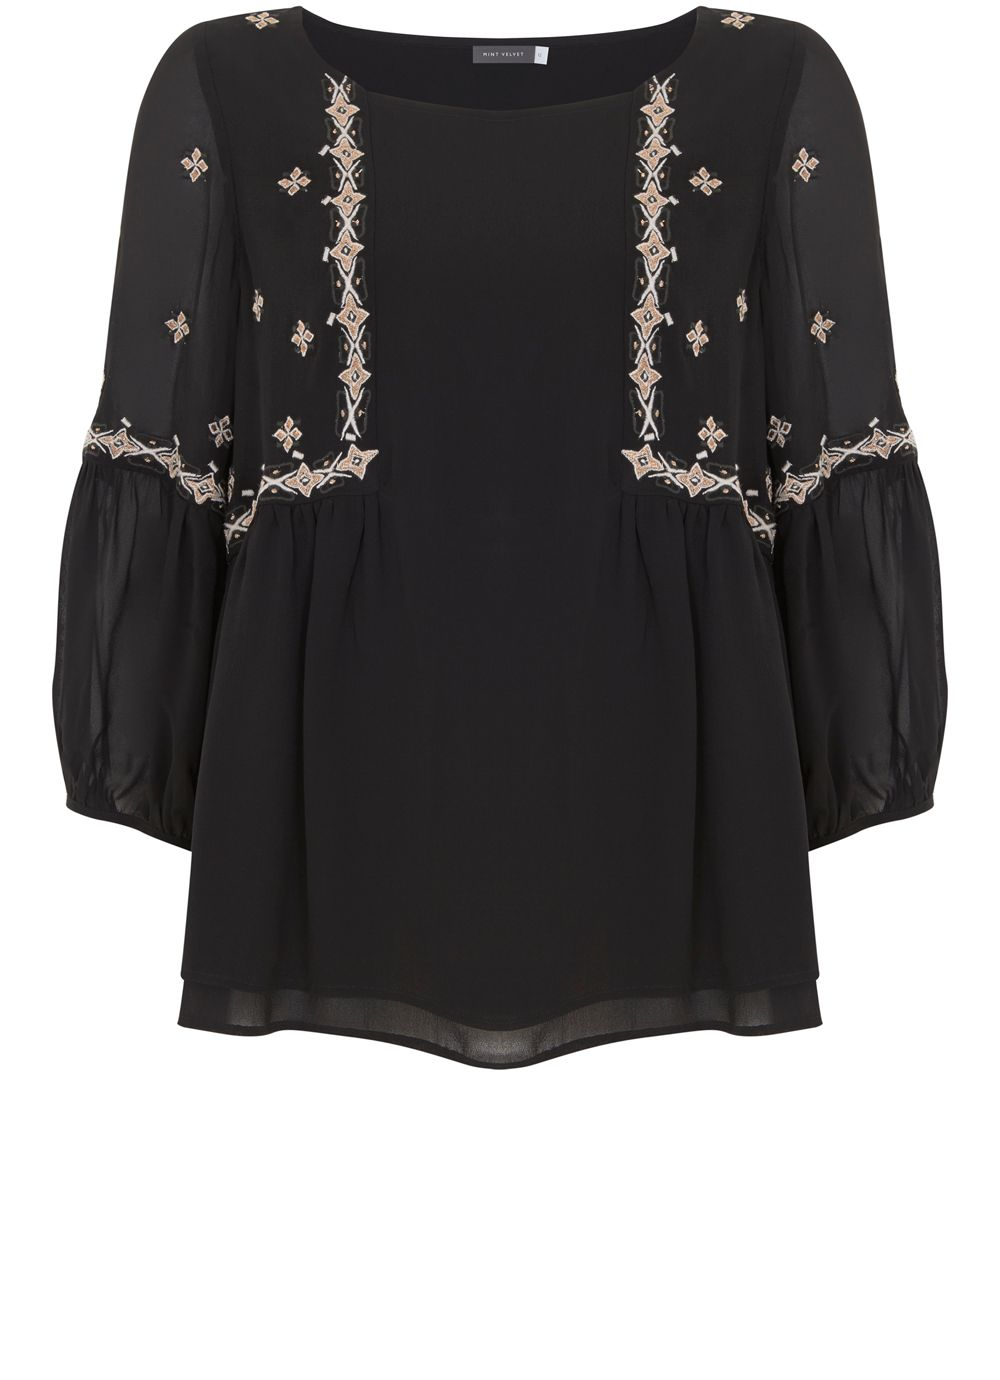 Mint Velvet Black Embroidered Swing Top, Black